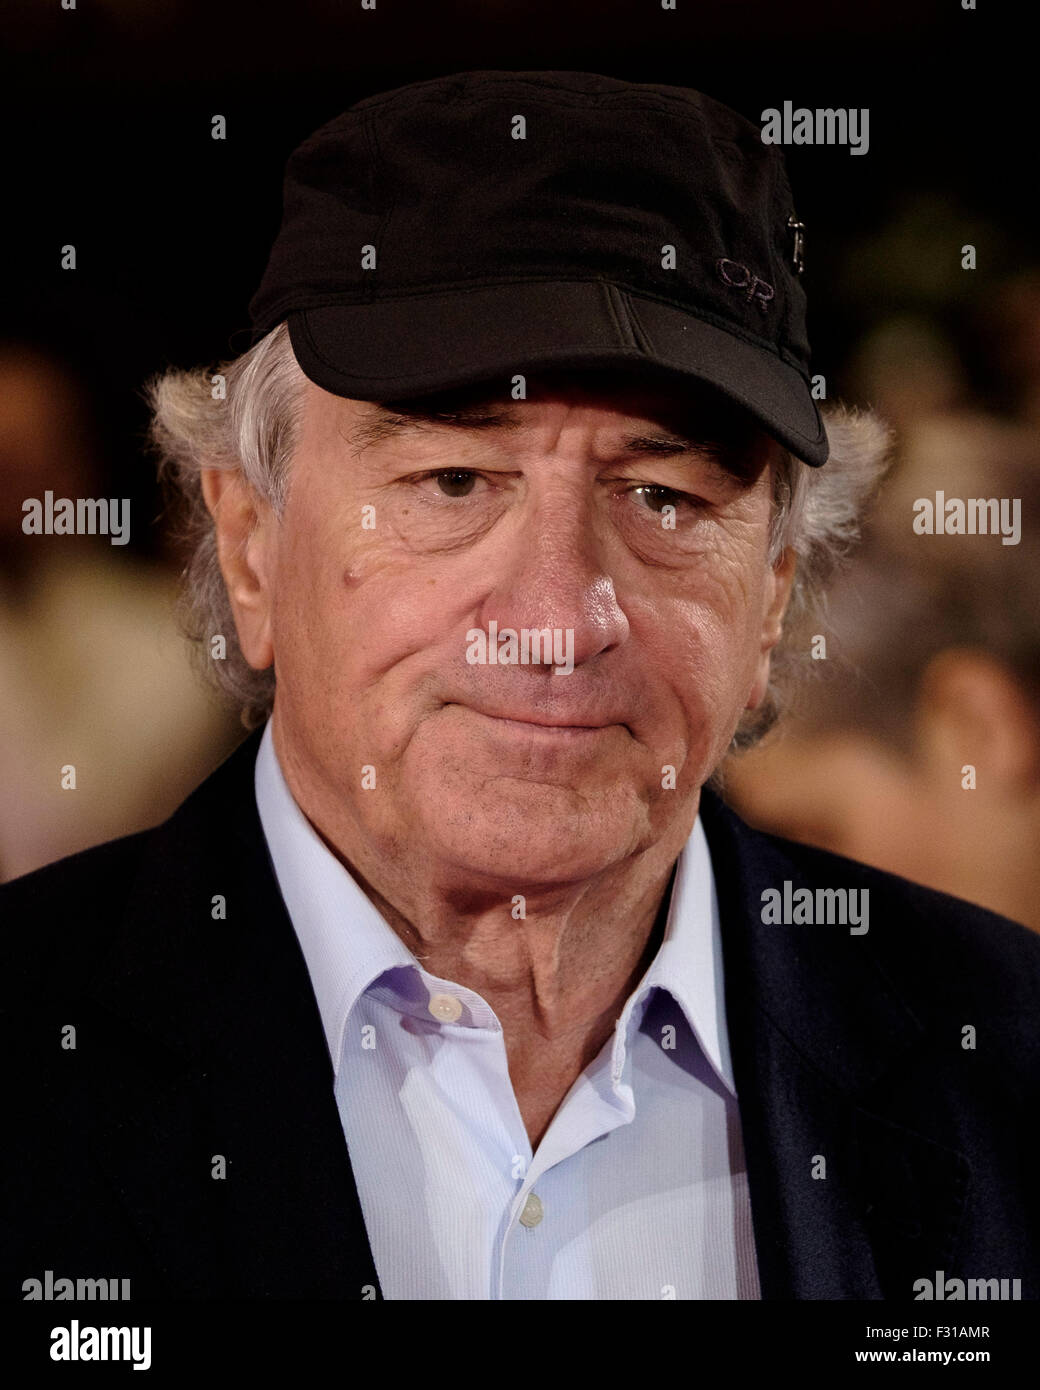 London, UK. 27th Sep, 2015. Robert De Niro attends the European Premiere of The Intern on 27/09/2015 at The VUE - Stock Image